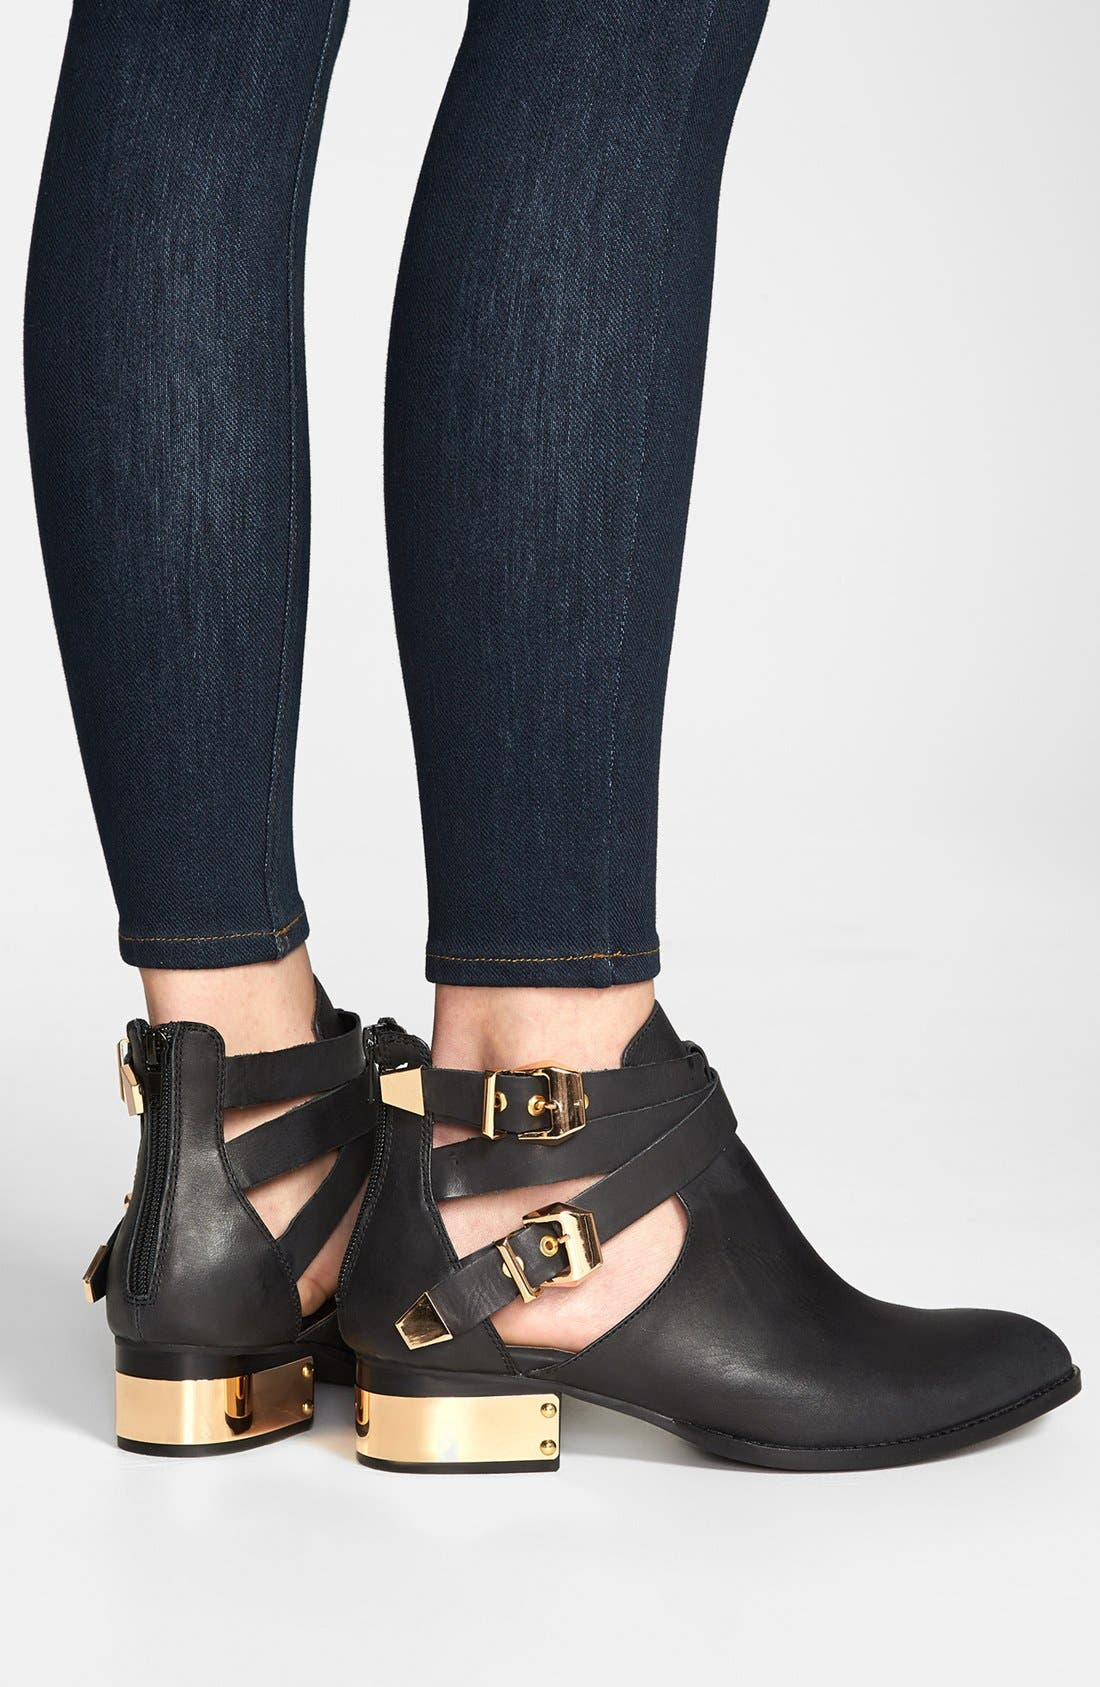 JEFFREY CAMPBELL,                             'Everly' Bootie,                             Alternate thumbnail 3, color,                             002